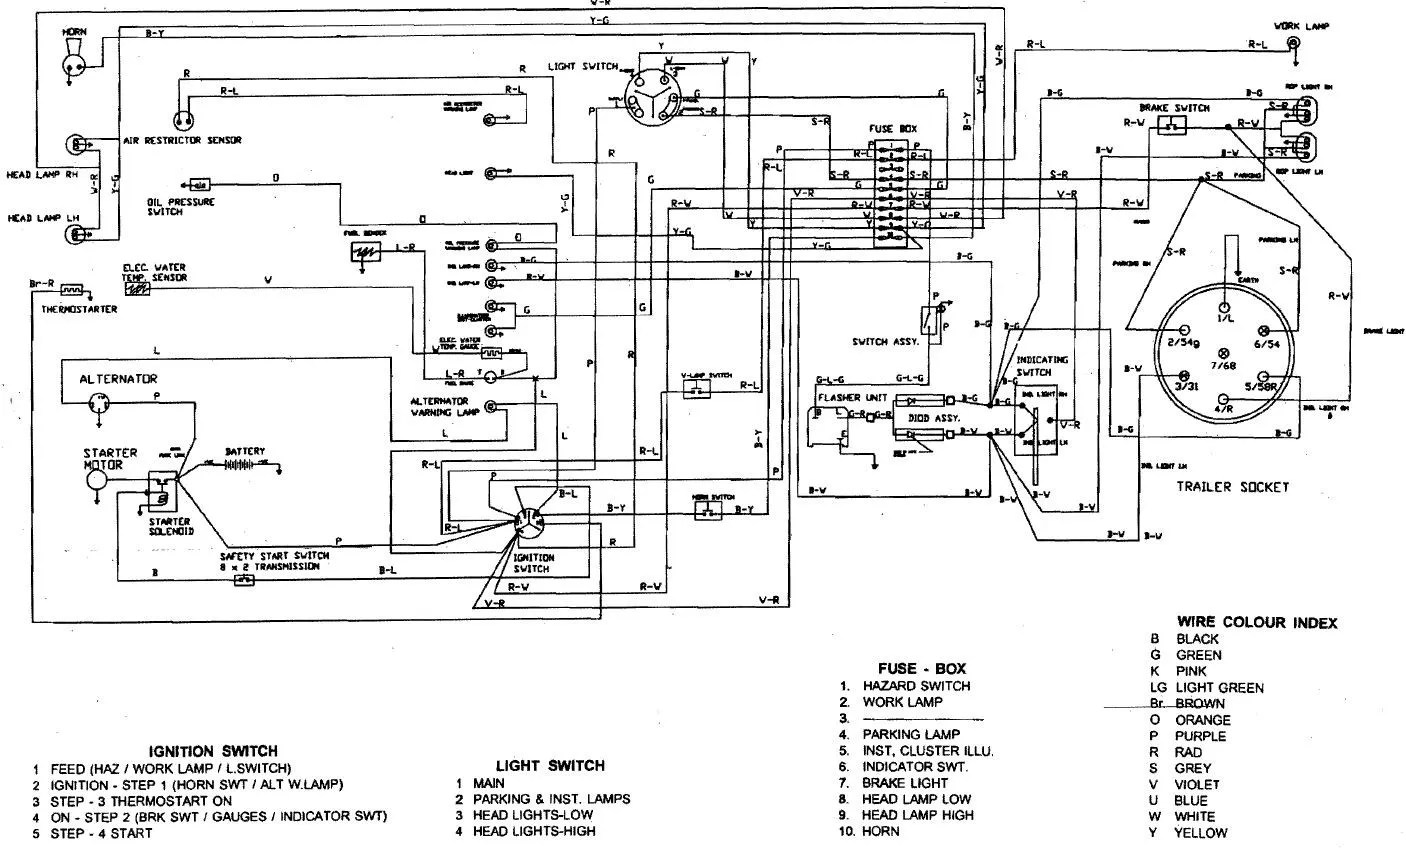 hight resolution of kubota l3010 wiring diagram wiring diagram valkubota l3010 schematics wiring diagram value kubota l3010 wiring diagram